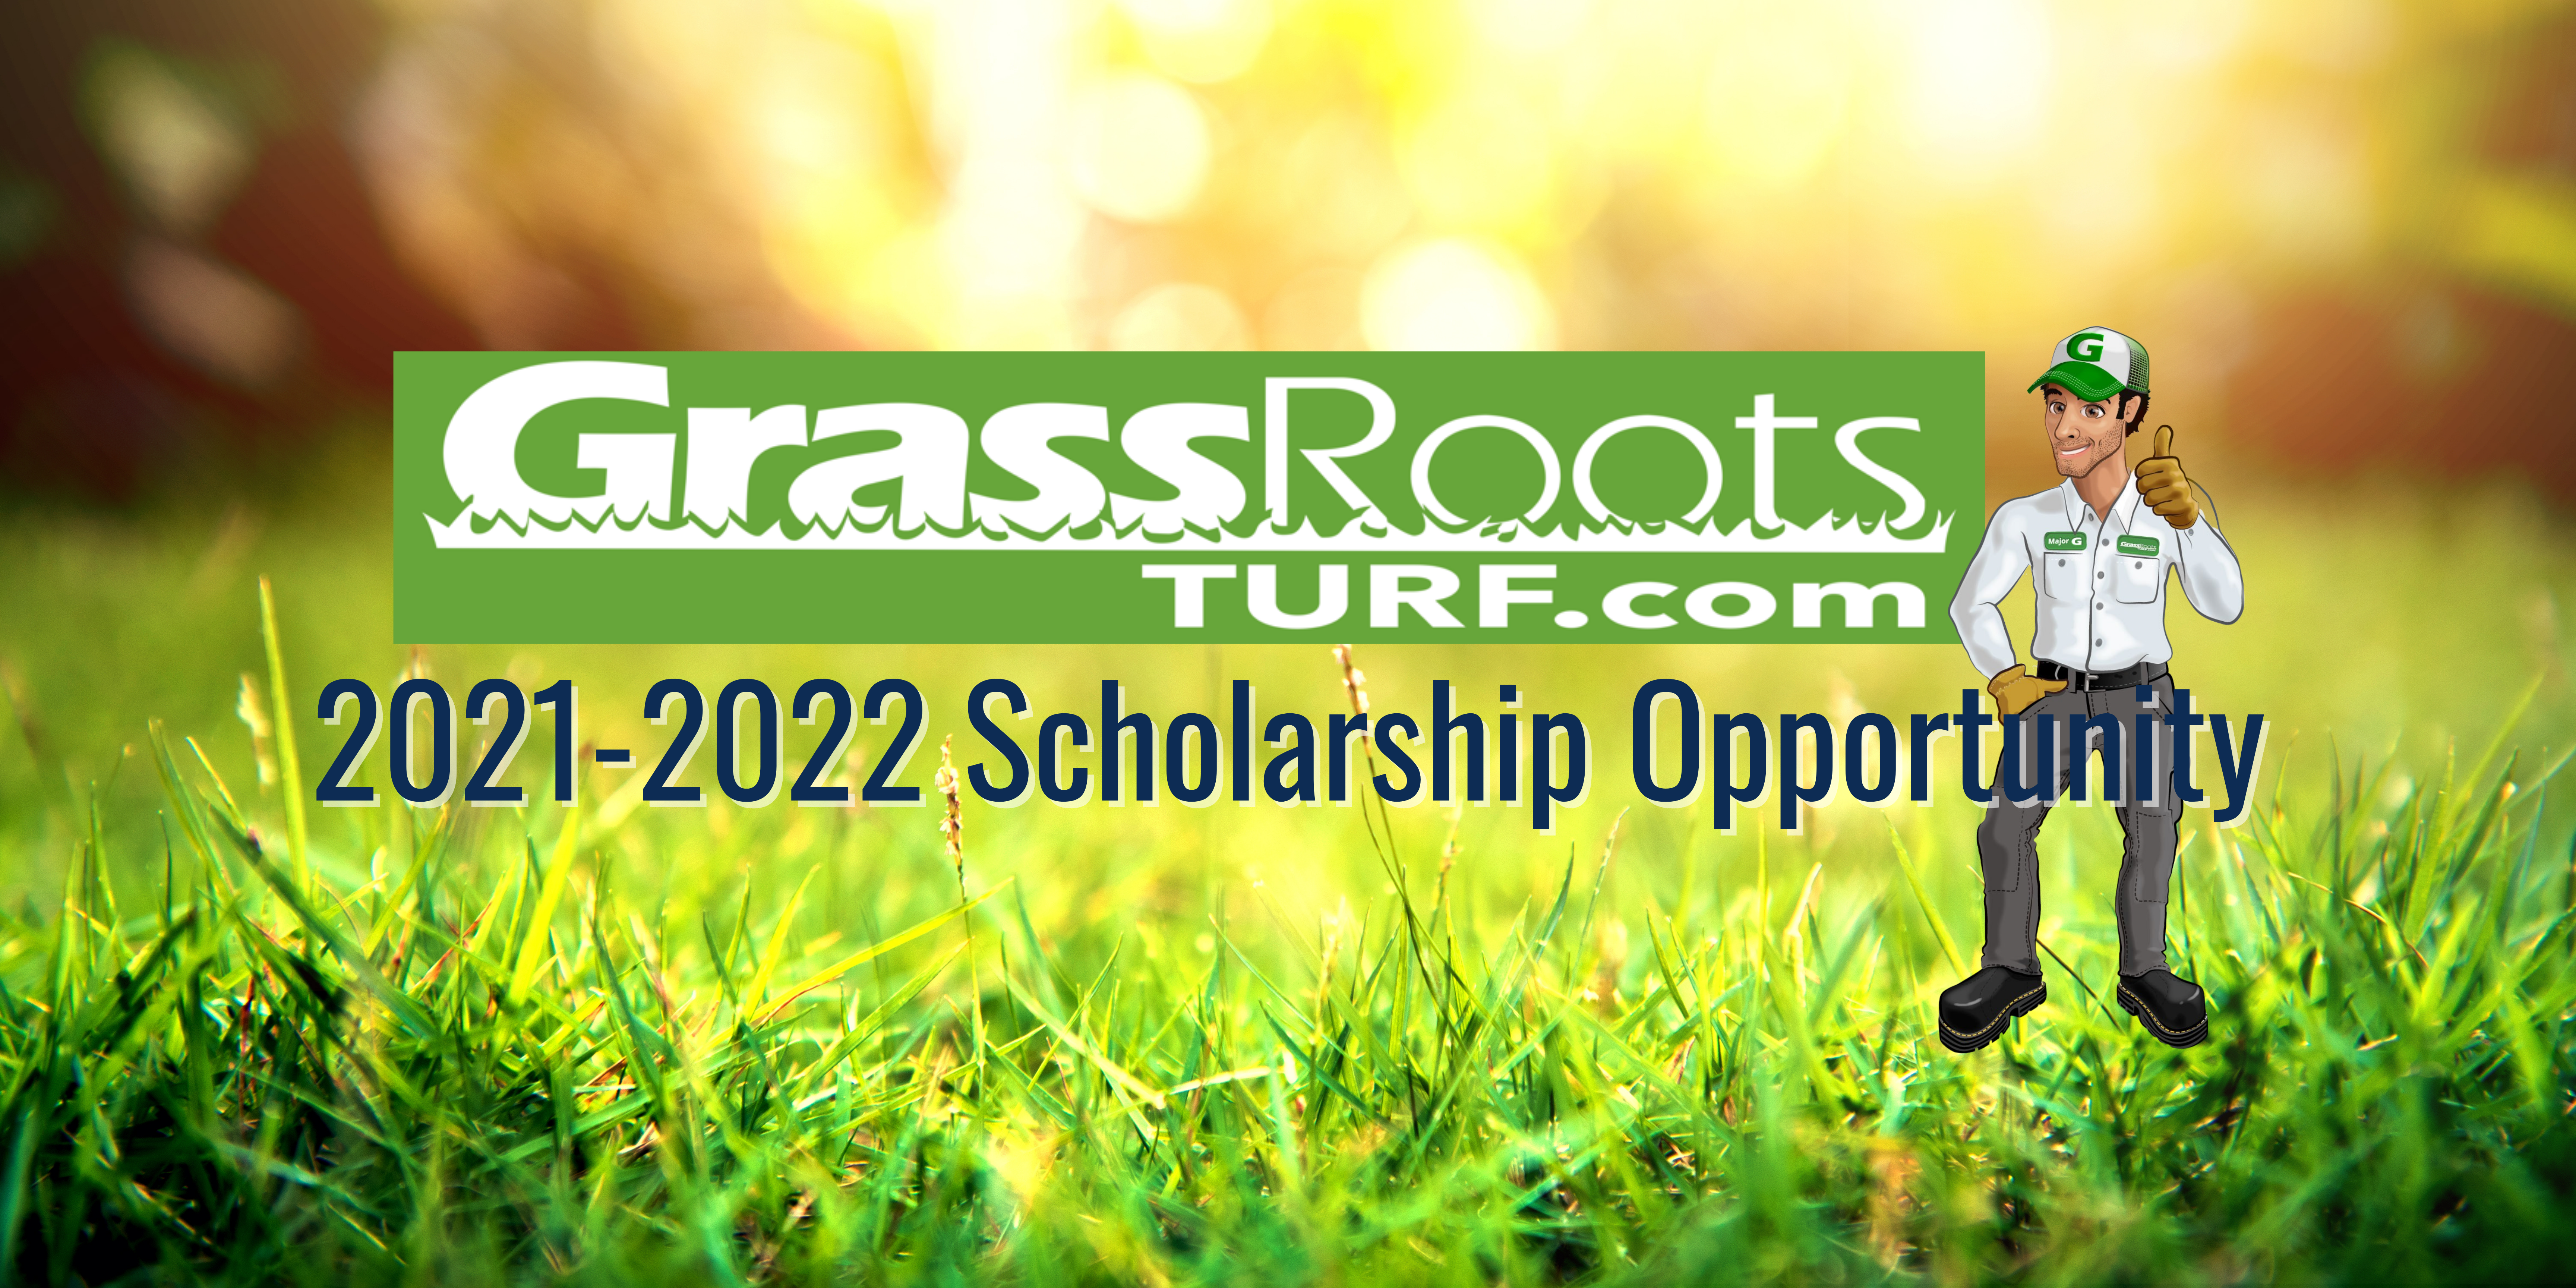 GrassRoots Scholarship Opportunity 2021 -2022